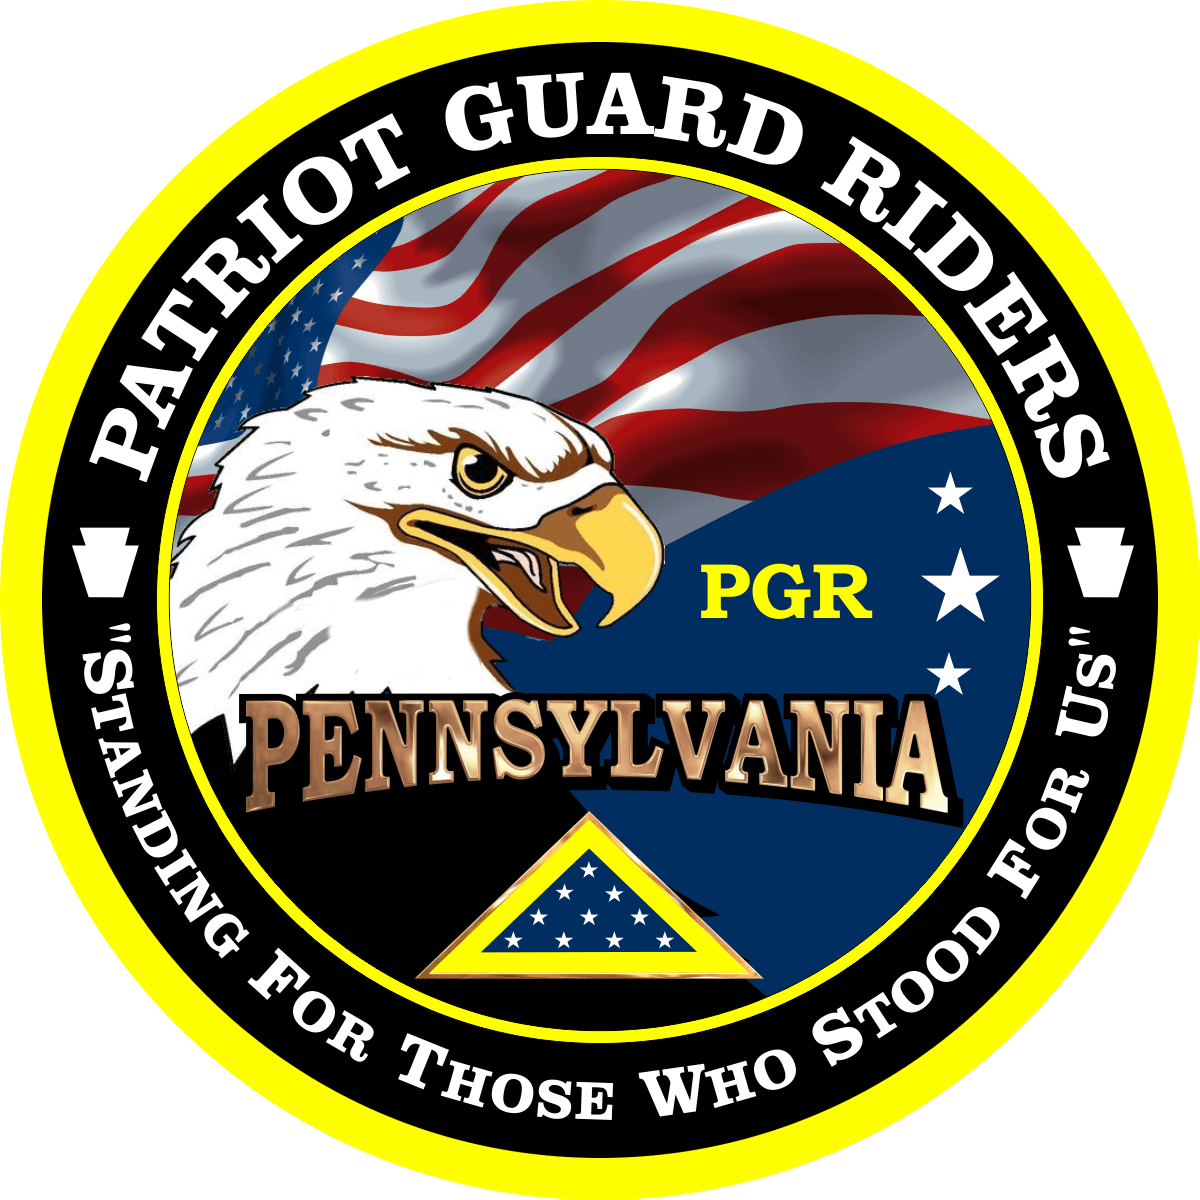 Pennsylvania pgr Patch redesign with better eagle